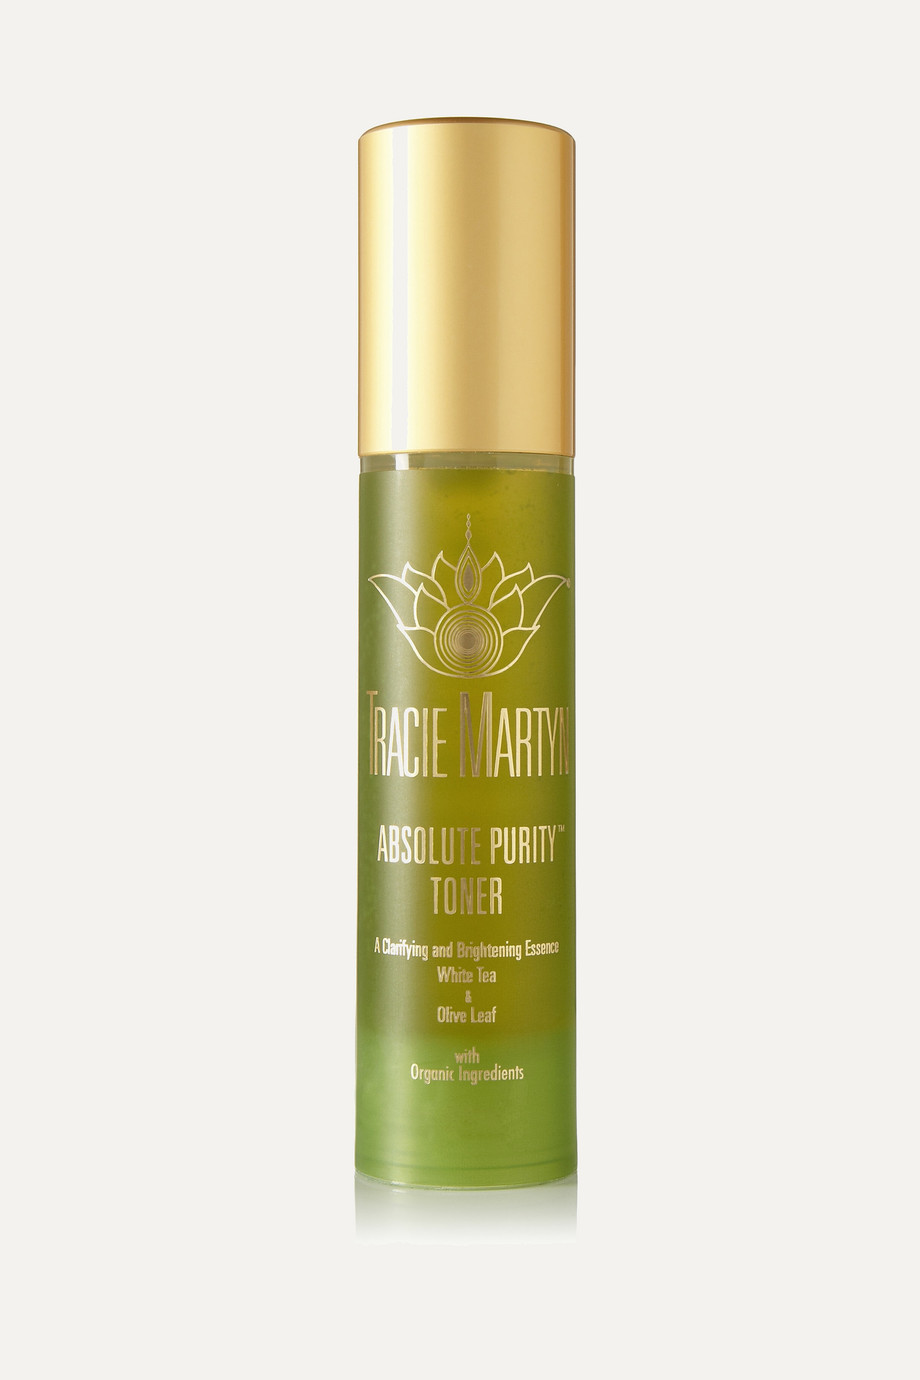 Absolute Purity Toner, 54g, by Tracie Martyn